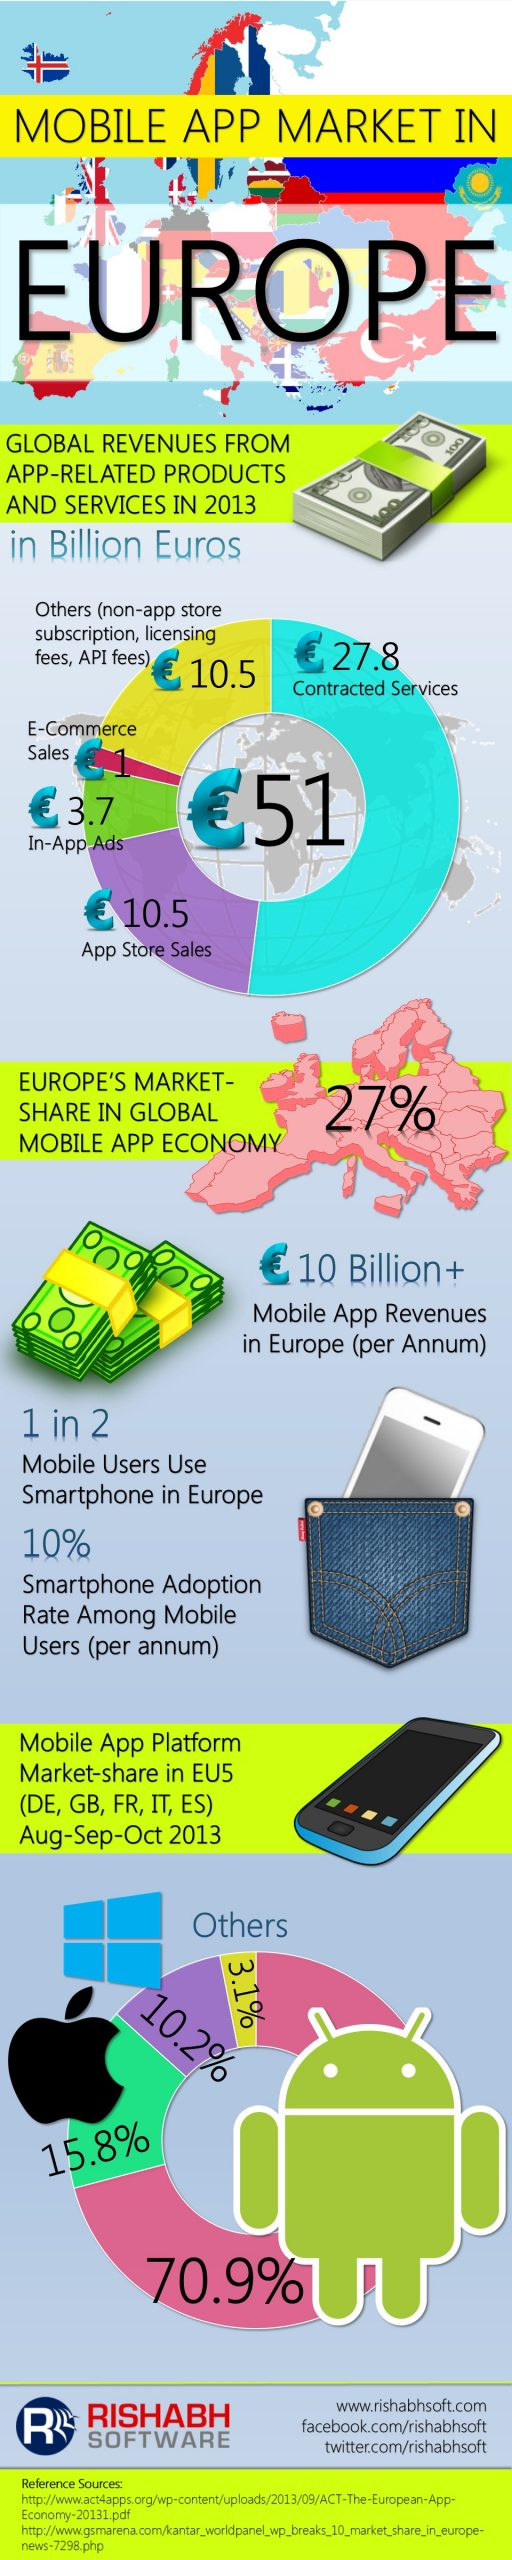 Mobile-Apps-Europe-Infographic